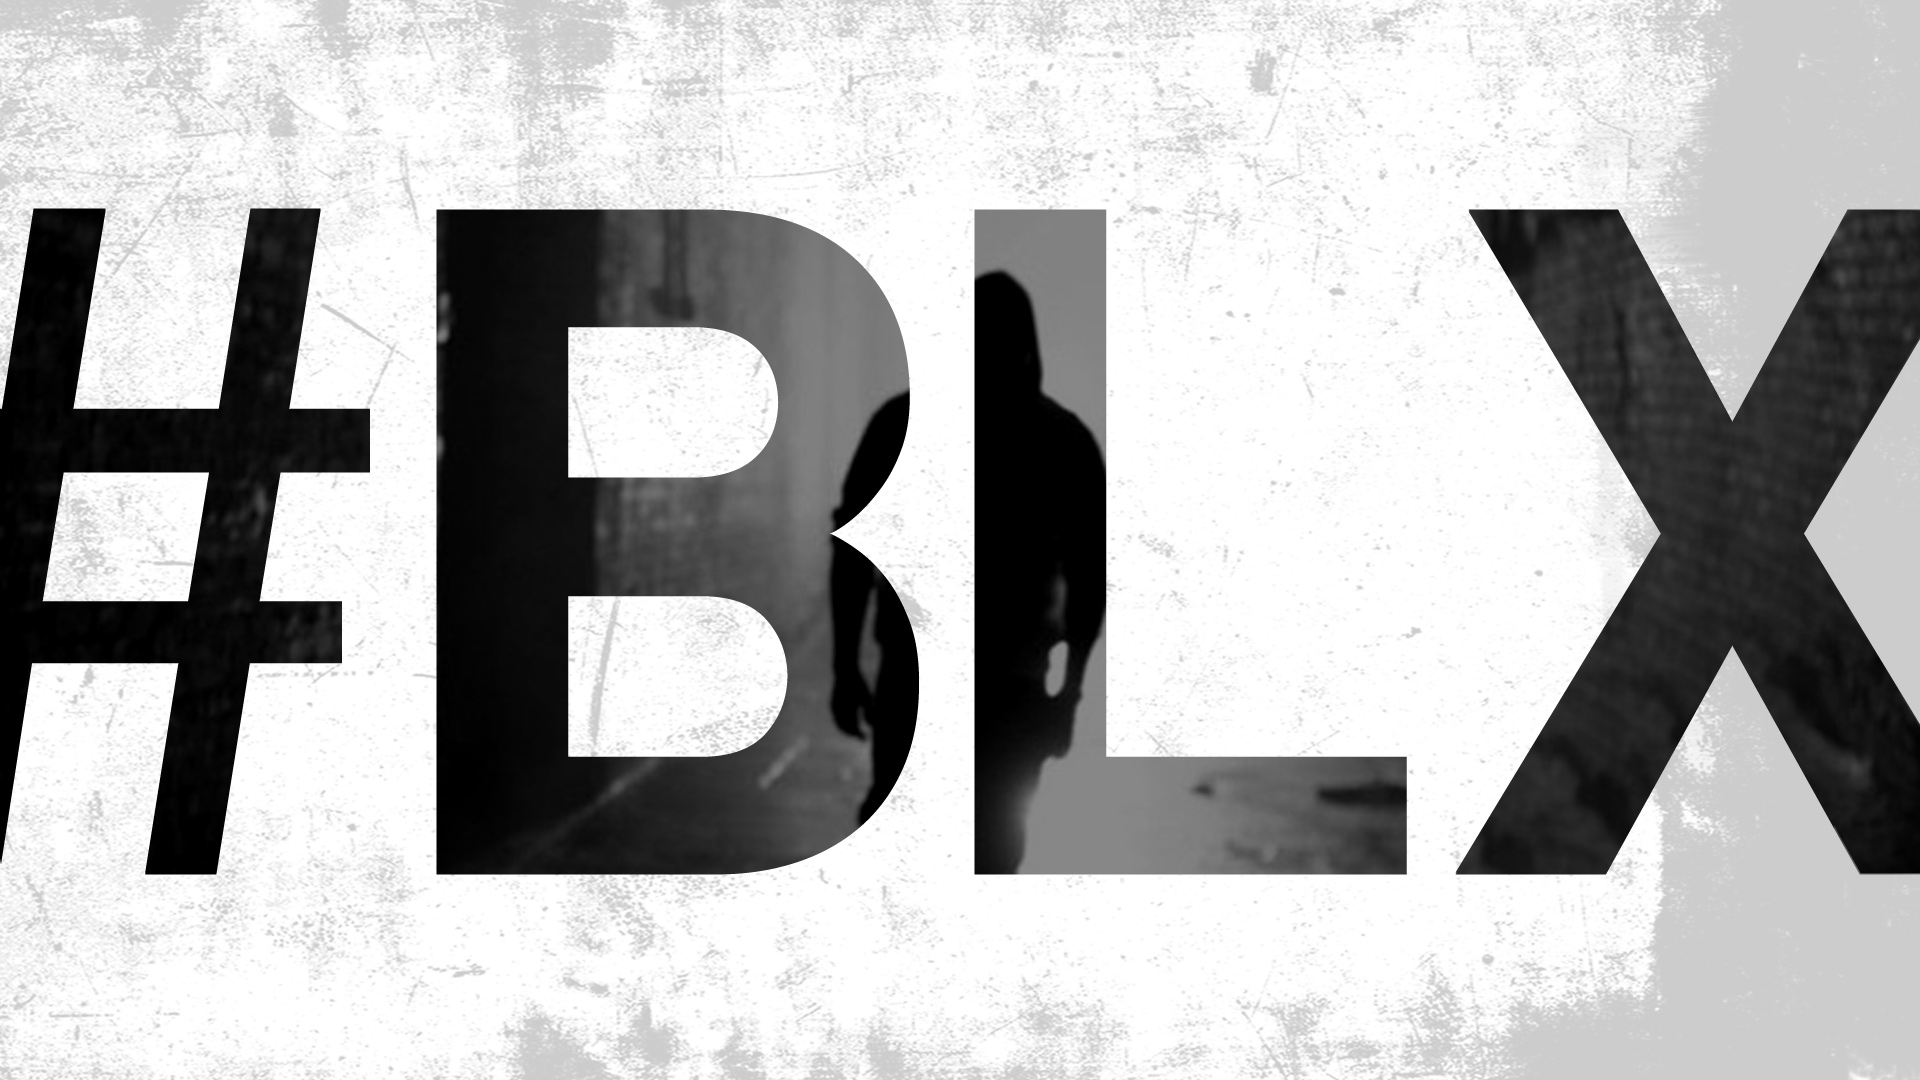 BLX_Season2_Exploration_Slide8.jpg